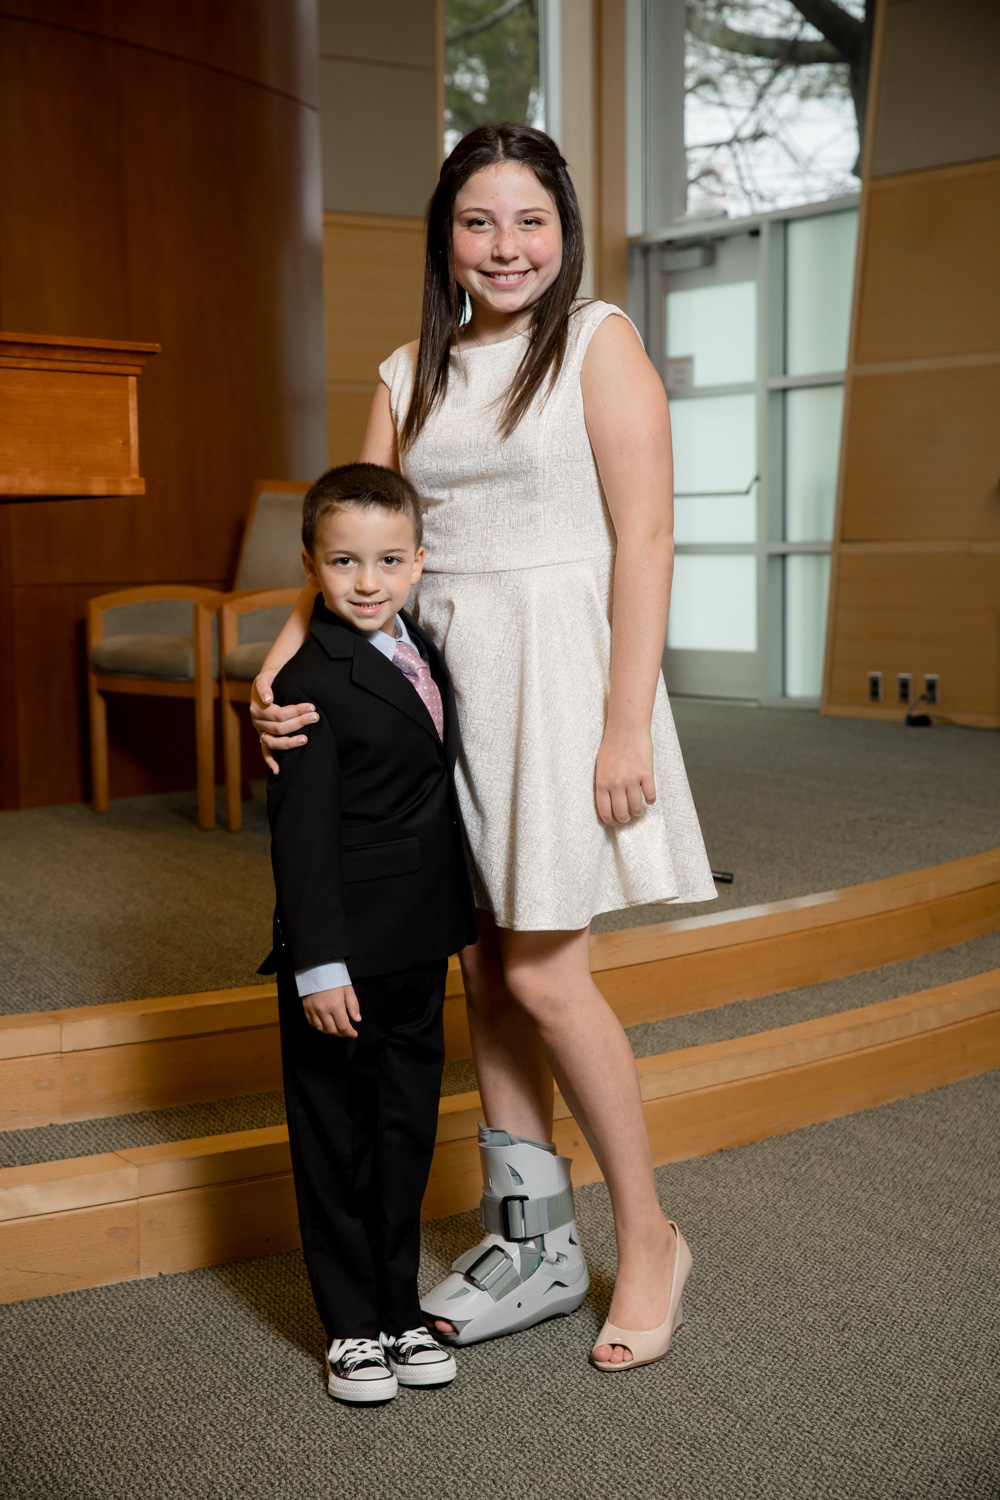 26-north-studios-bat-mitzvah-temple-beth-shalom-needham-verve-natick-4.jpg